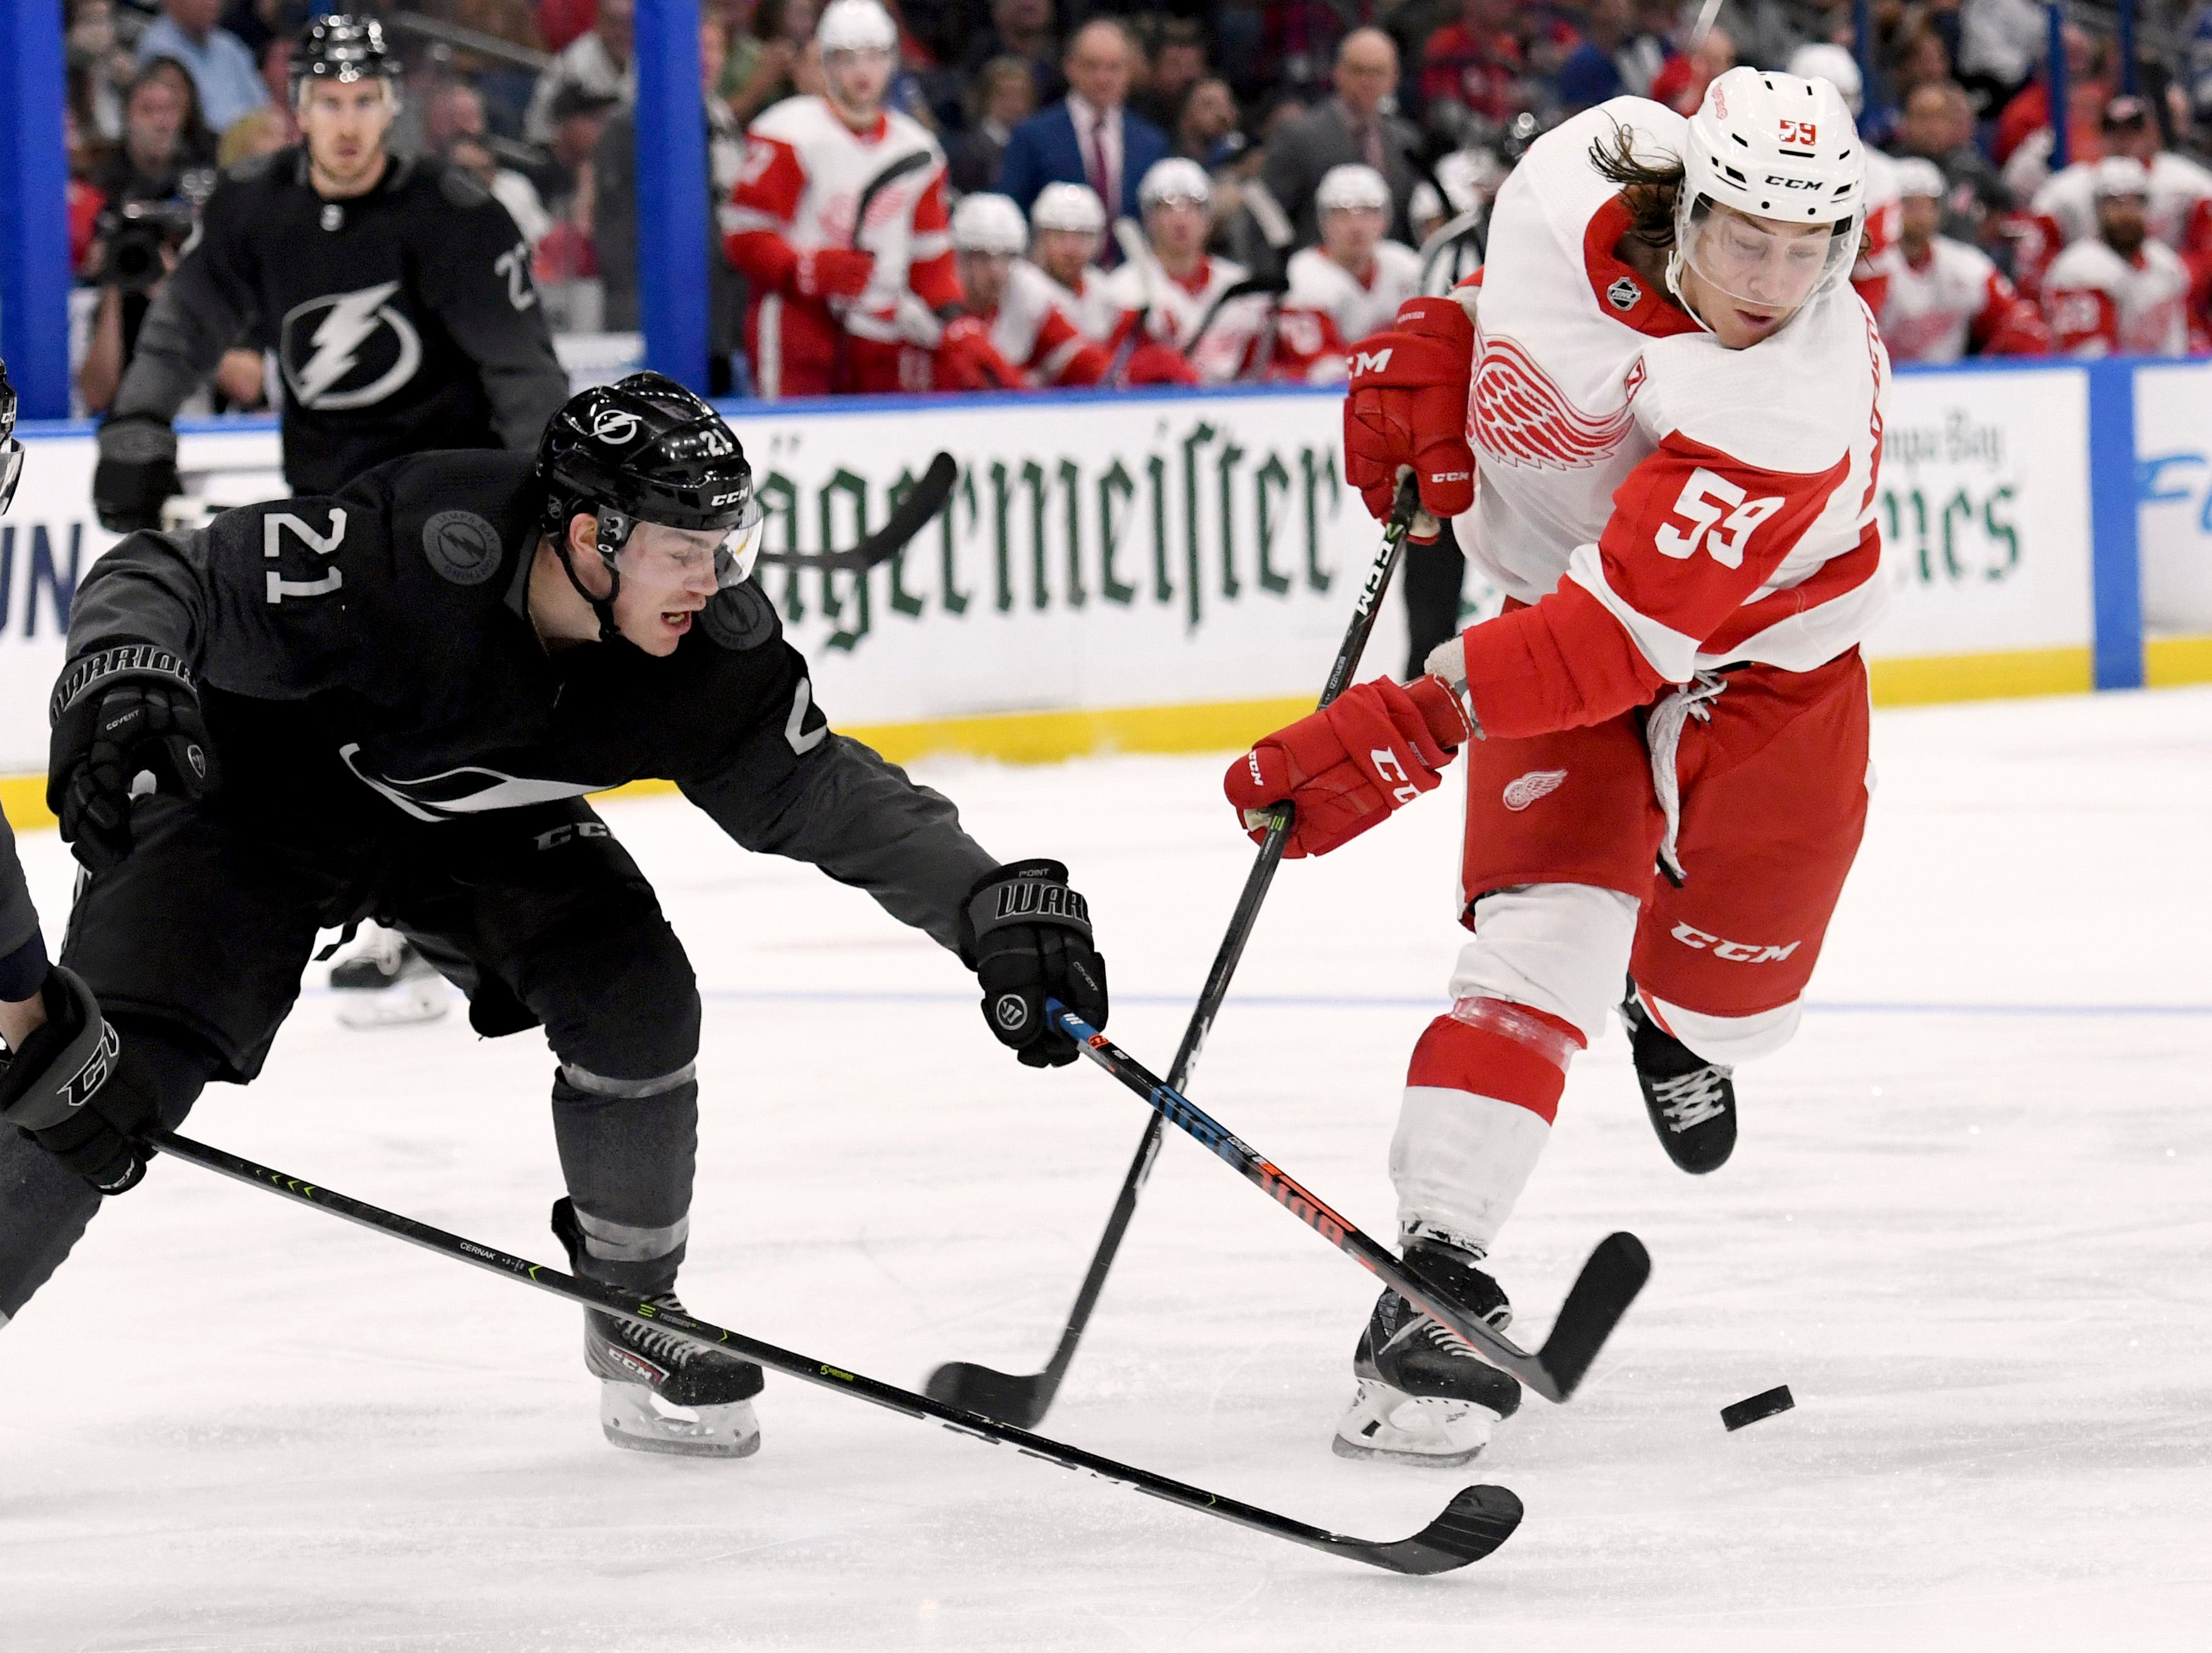 Tampa Bay Lightning center Brayden Point (21) blocks a shot by Detroit Red Wings left wing Tyler Bertuzzi (59) during the third period of an NHL hockey game Saturday, March 9, 2019, in Tampa, Fla. (AP Photo/Jason Behnken)